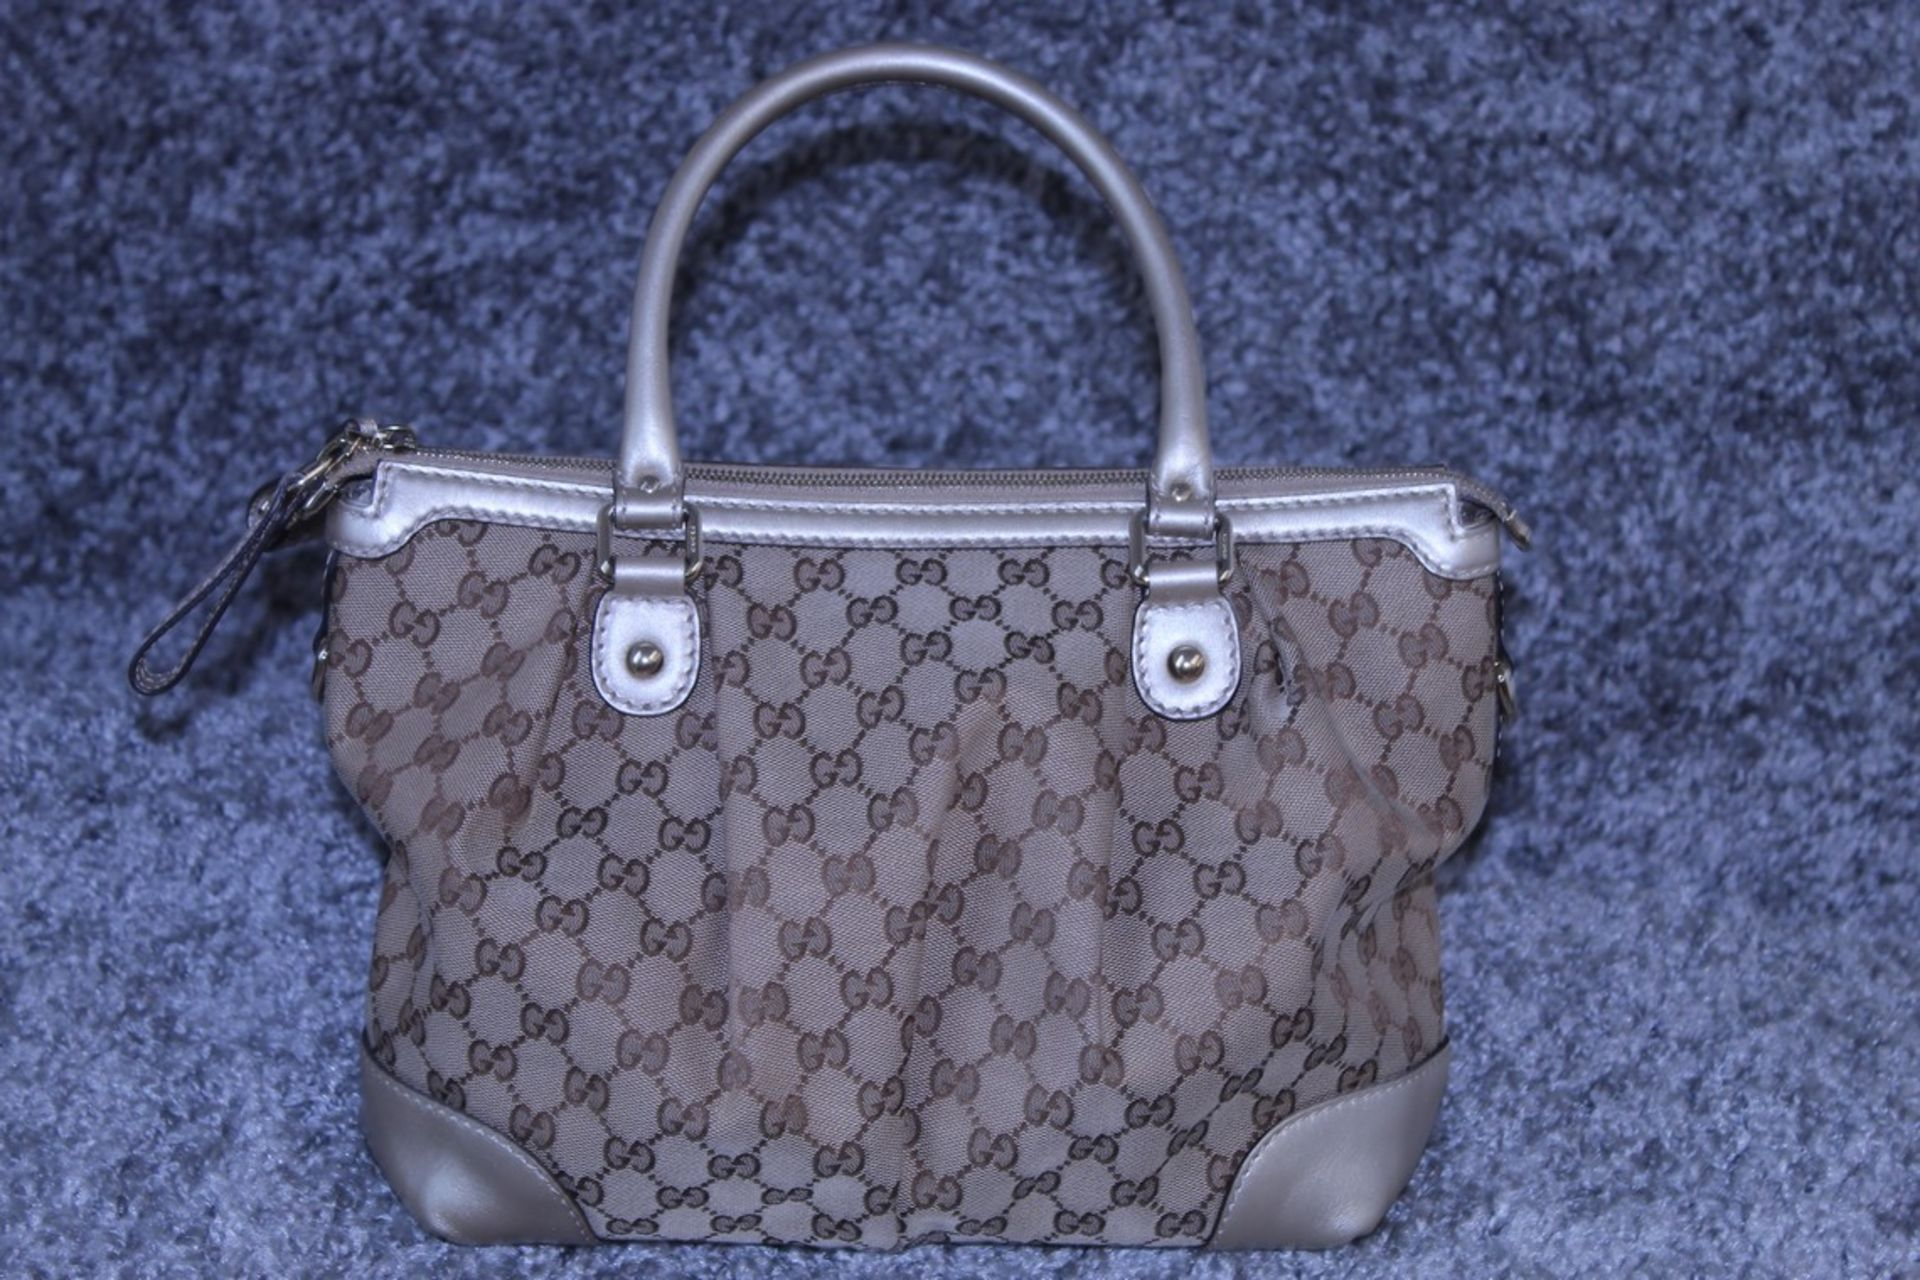 RRP £1,600 Sukey Top Handle Shoulder Bag, Beige/Brown Monogram Canvas, 28.5X22X12Cm (Production Code - Image 2 of 5